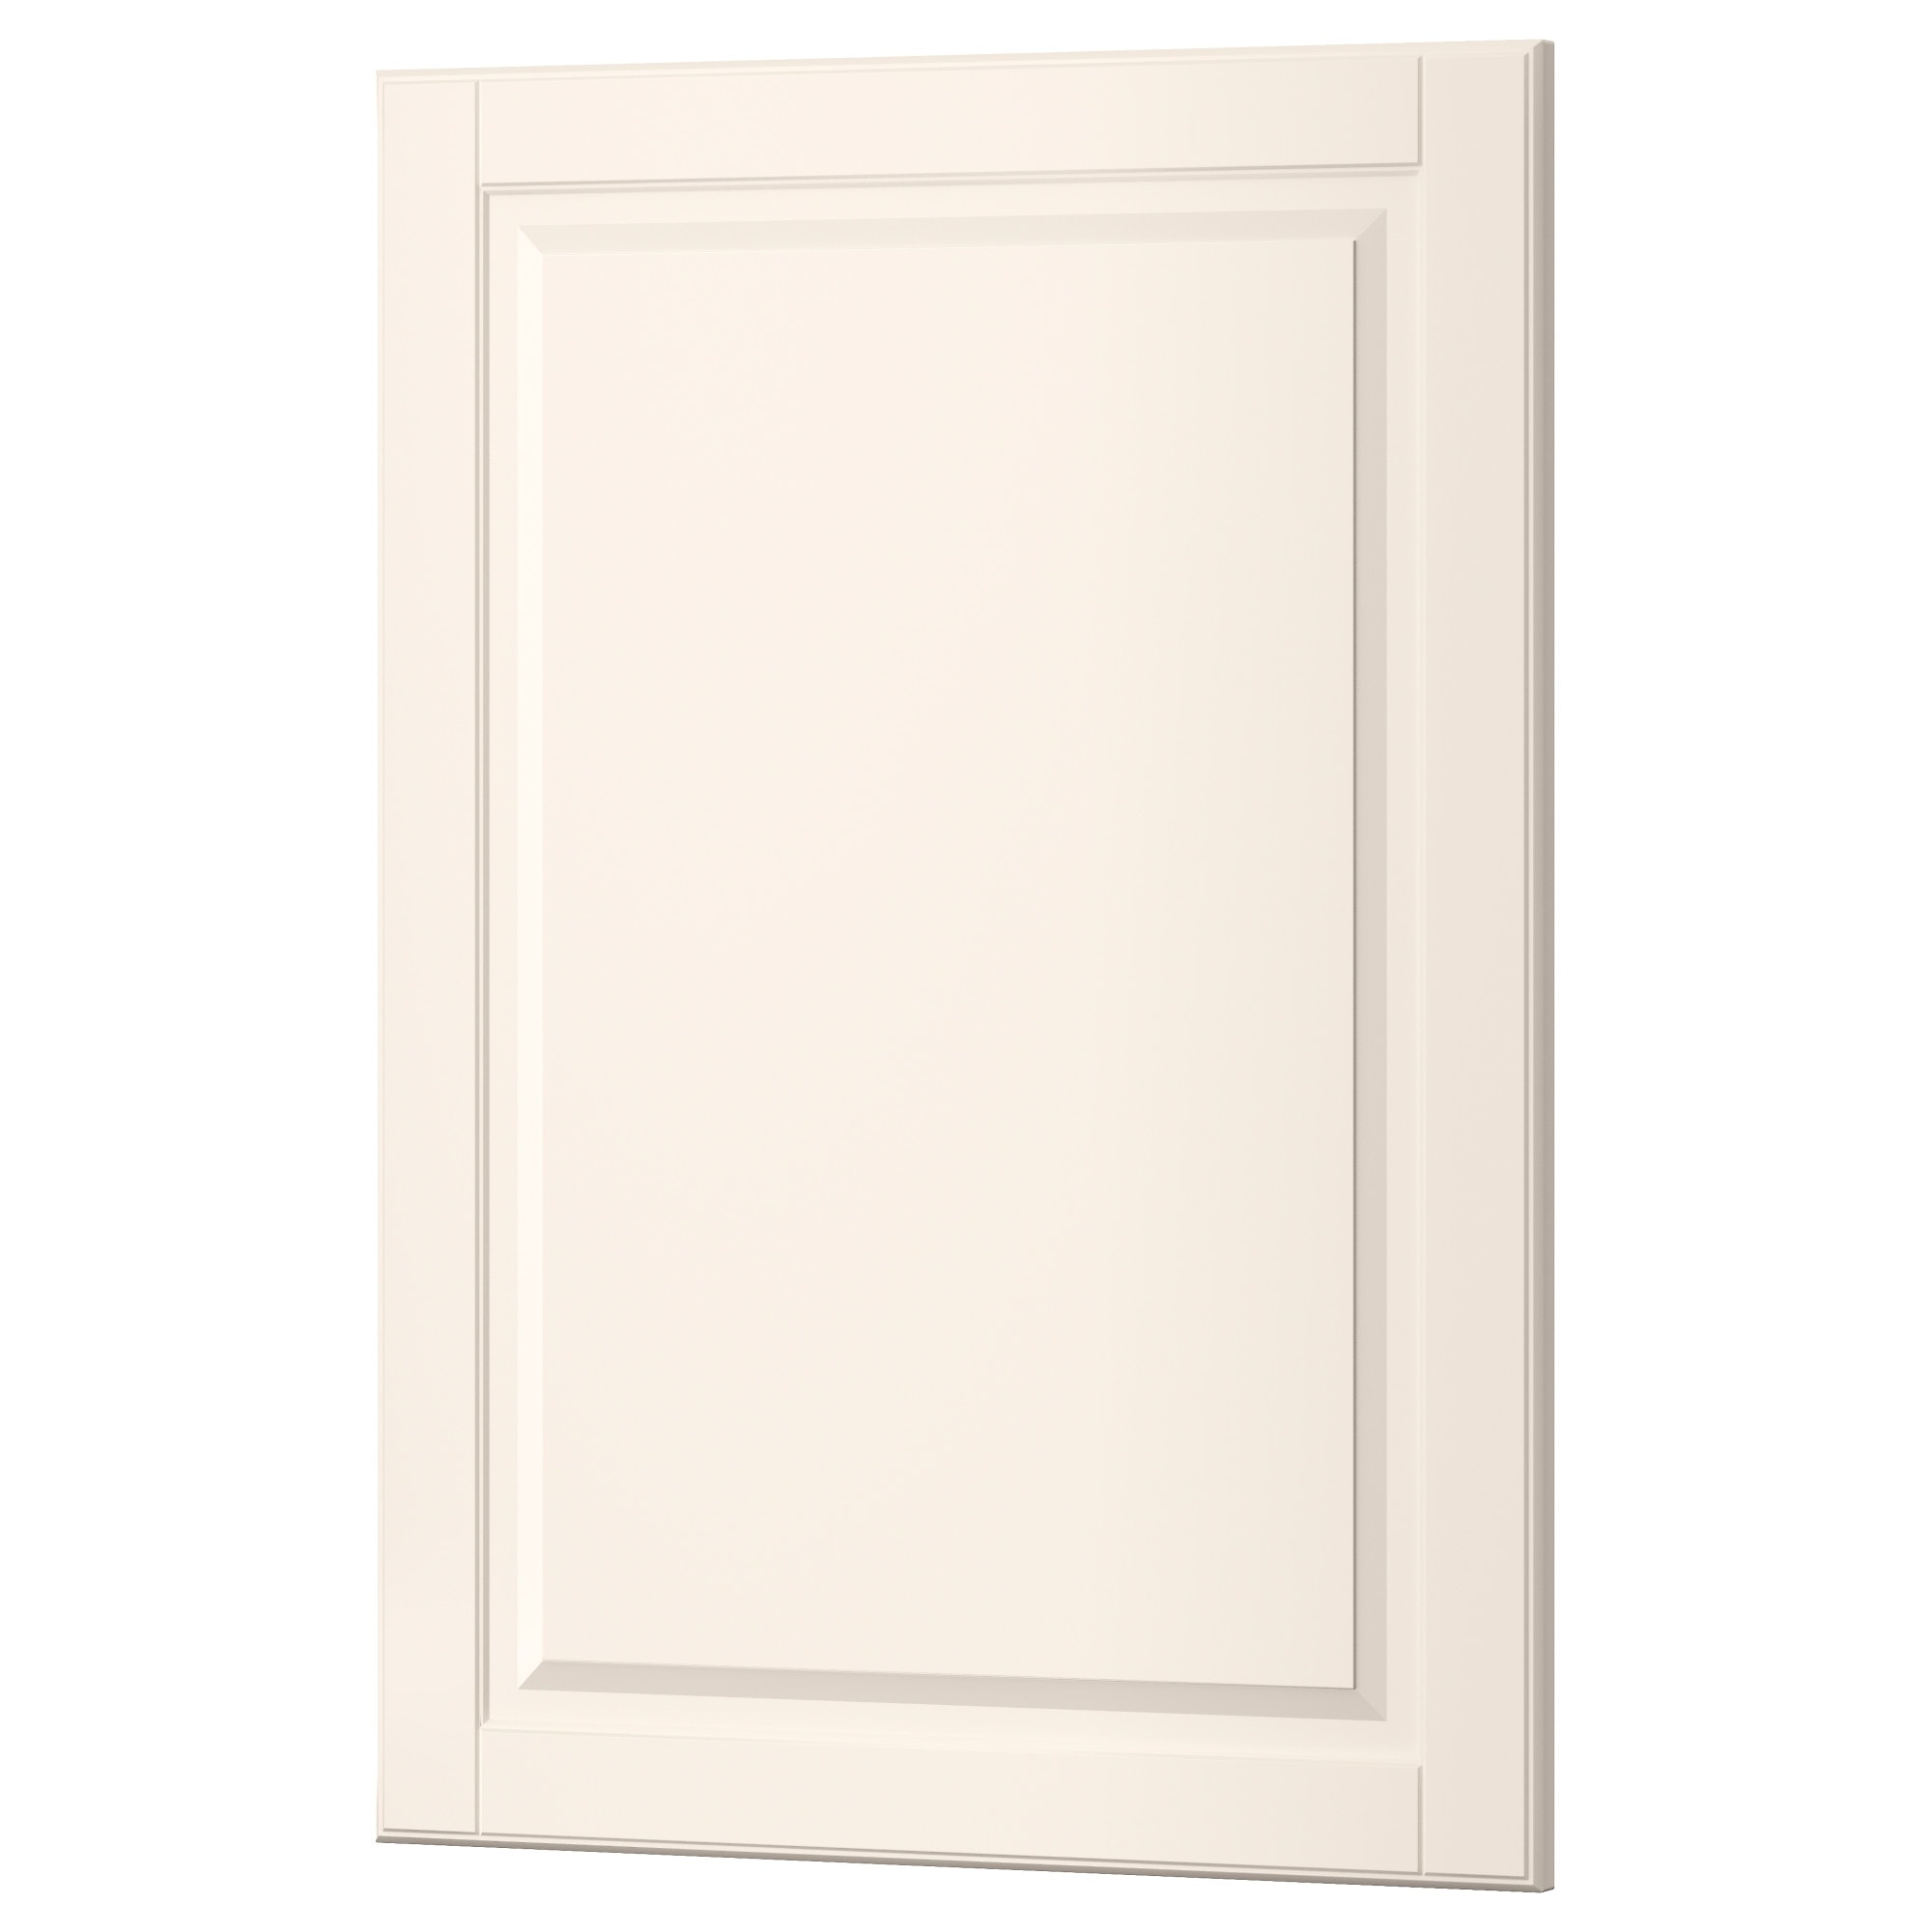 base most sizes tall wall matchless cupboard high cheap dimensions standard bathroom cool ikea cabinet size glass upper kitchen doors inch with of cabinets large on deep white